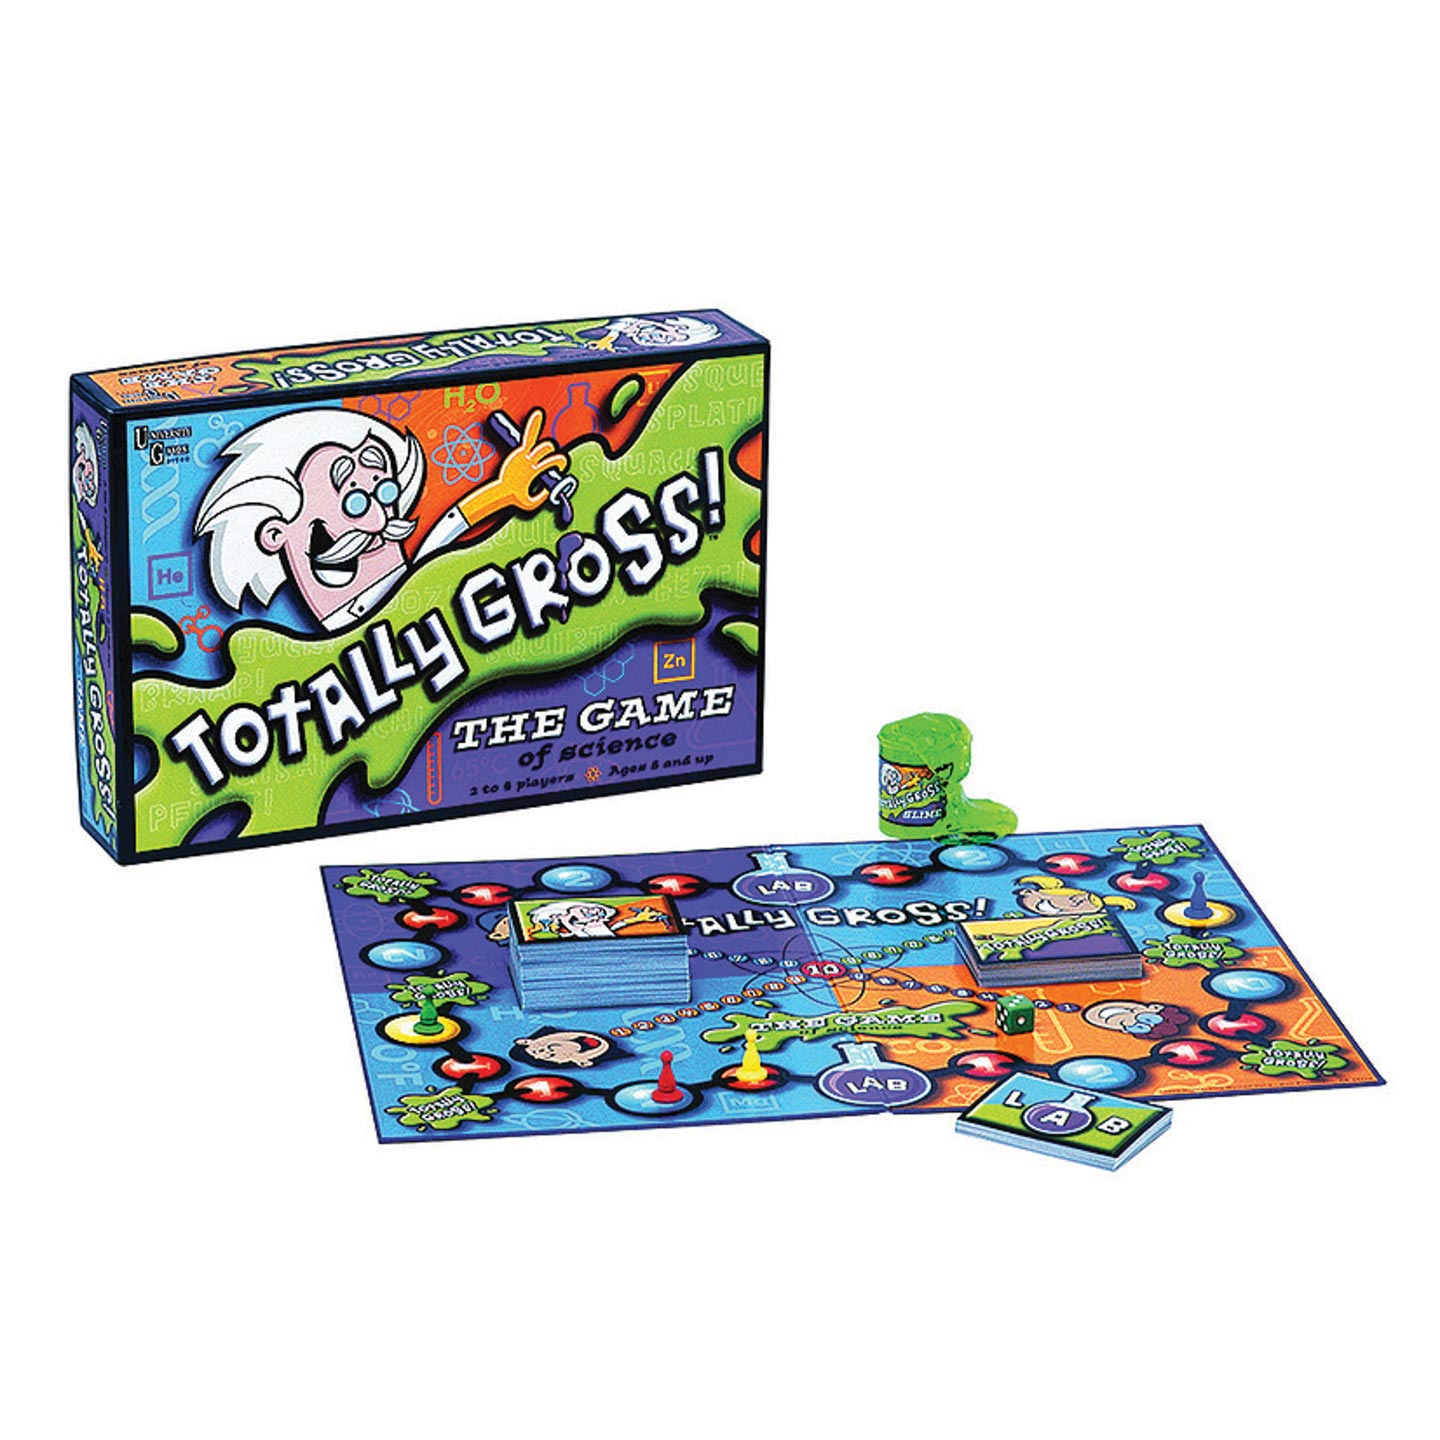 University Games Totally Gross! The Game of Science Learning Board Game (Walmart)